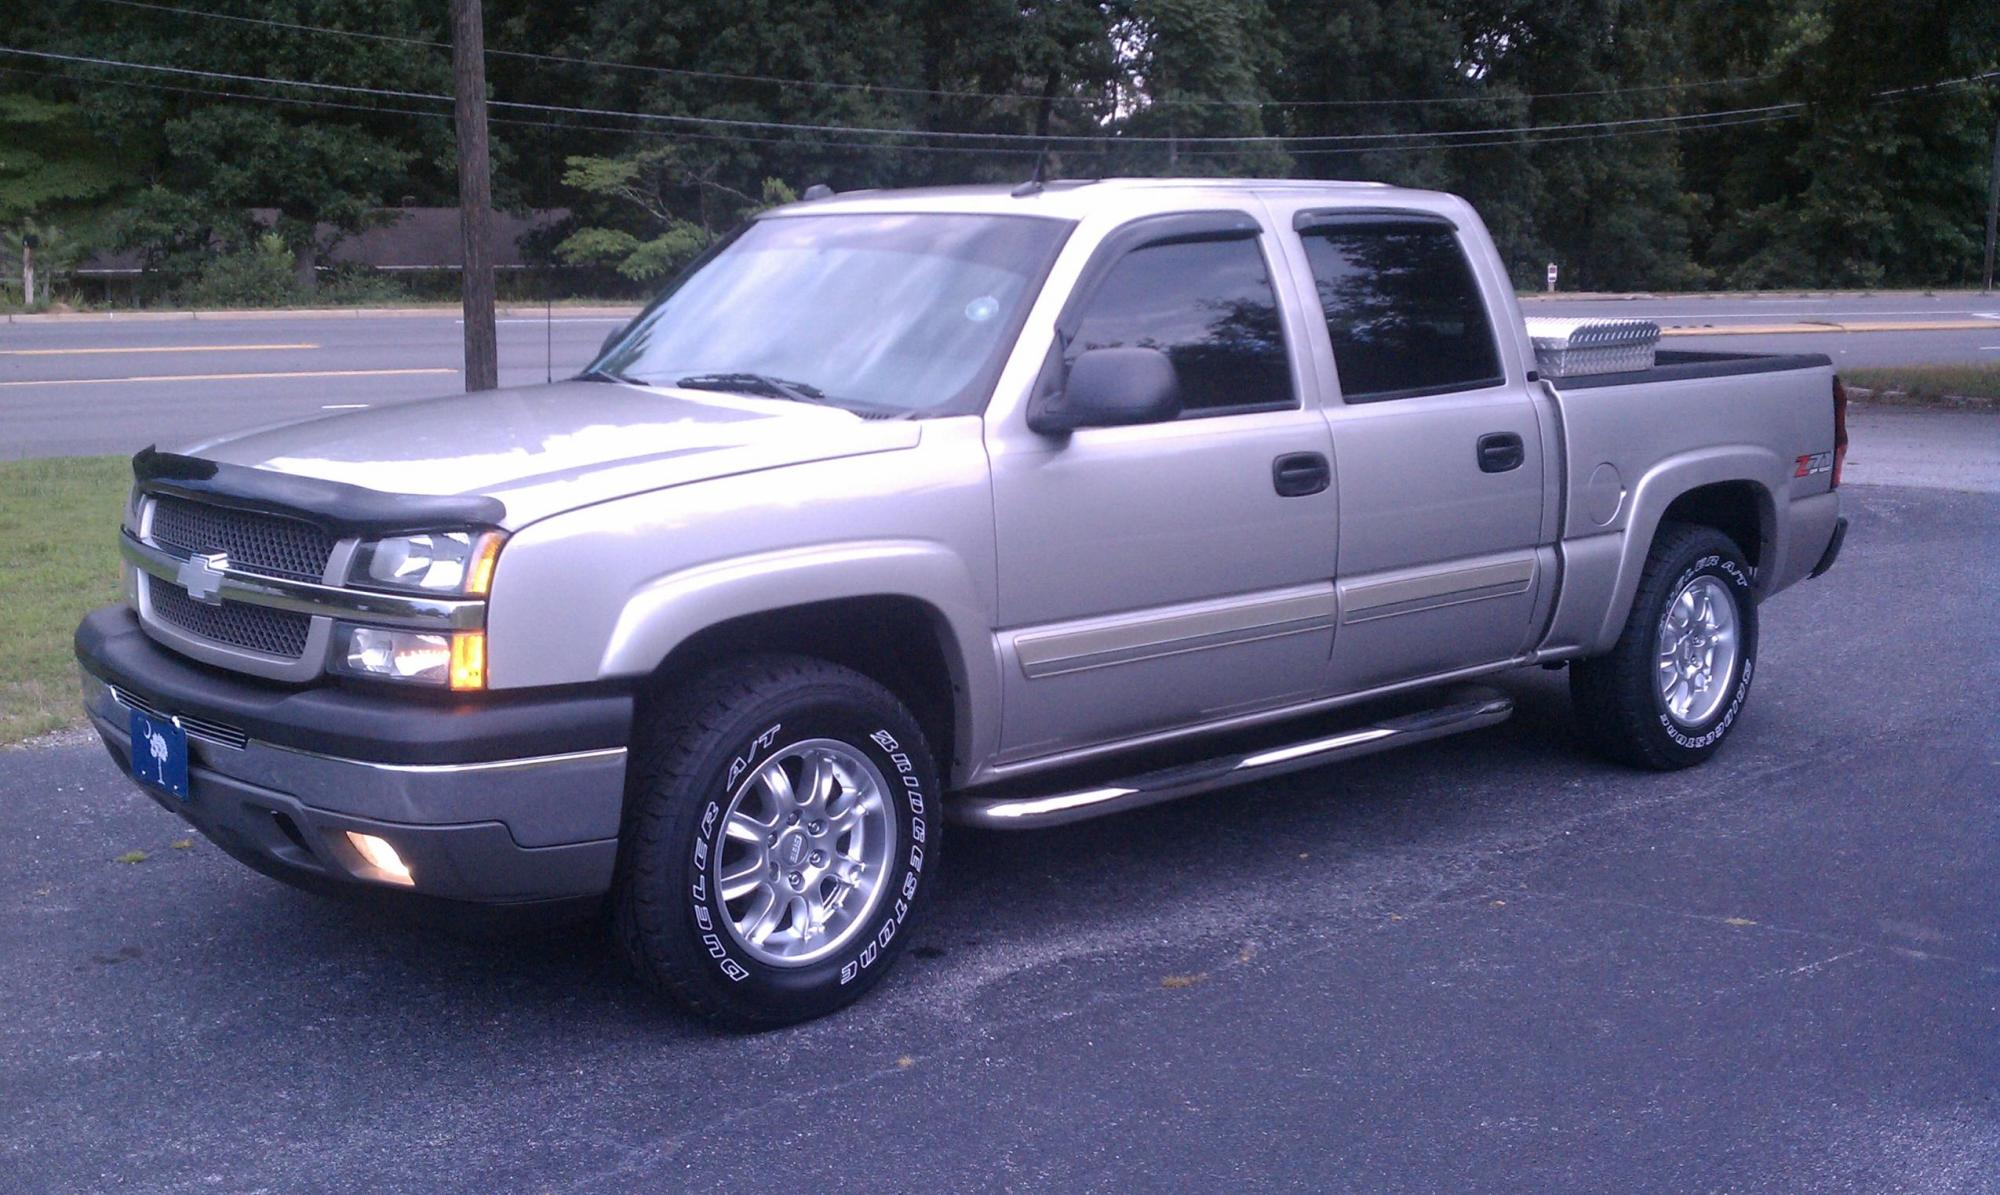 hight resolution of 2005 silverado z71 crew cab 285 65 18 silverado wheels 1